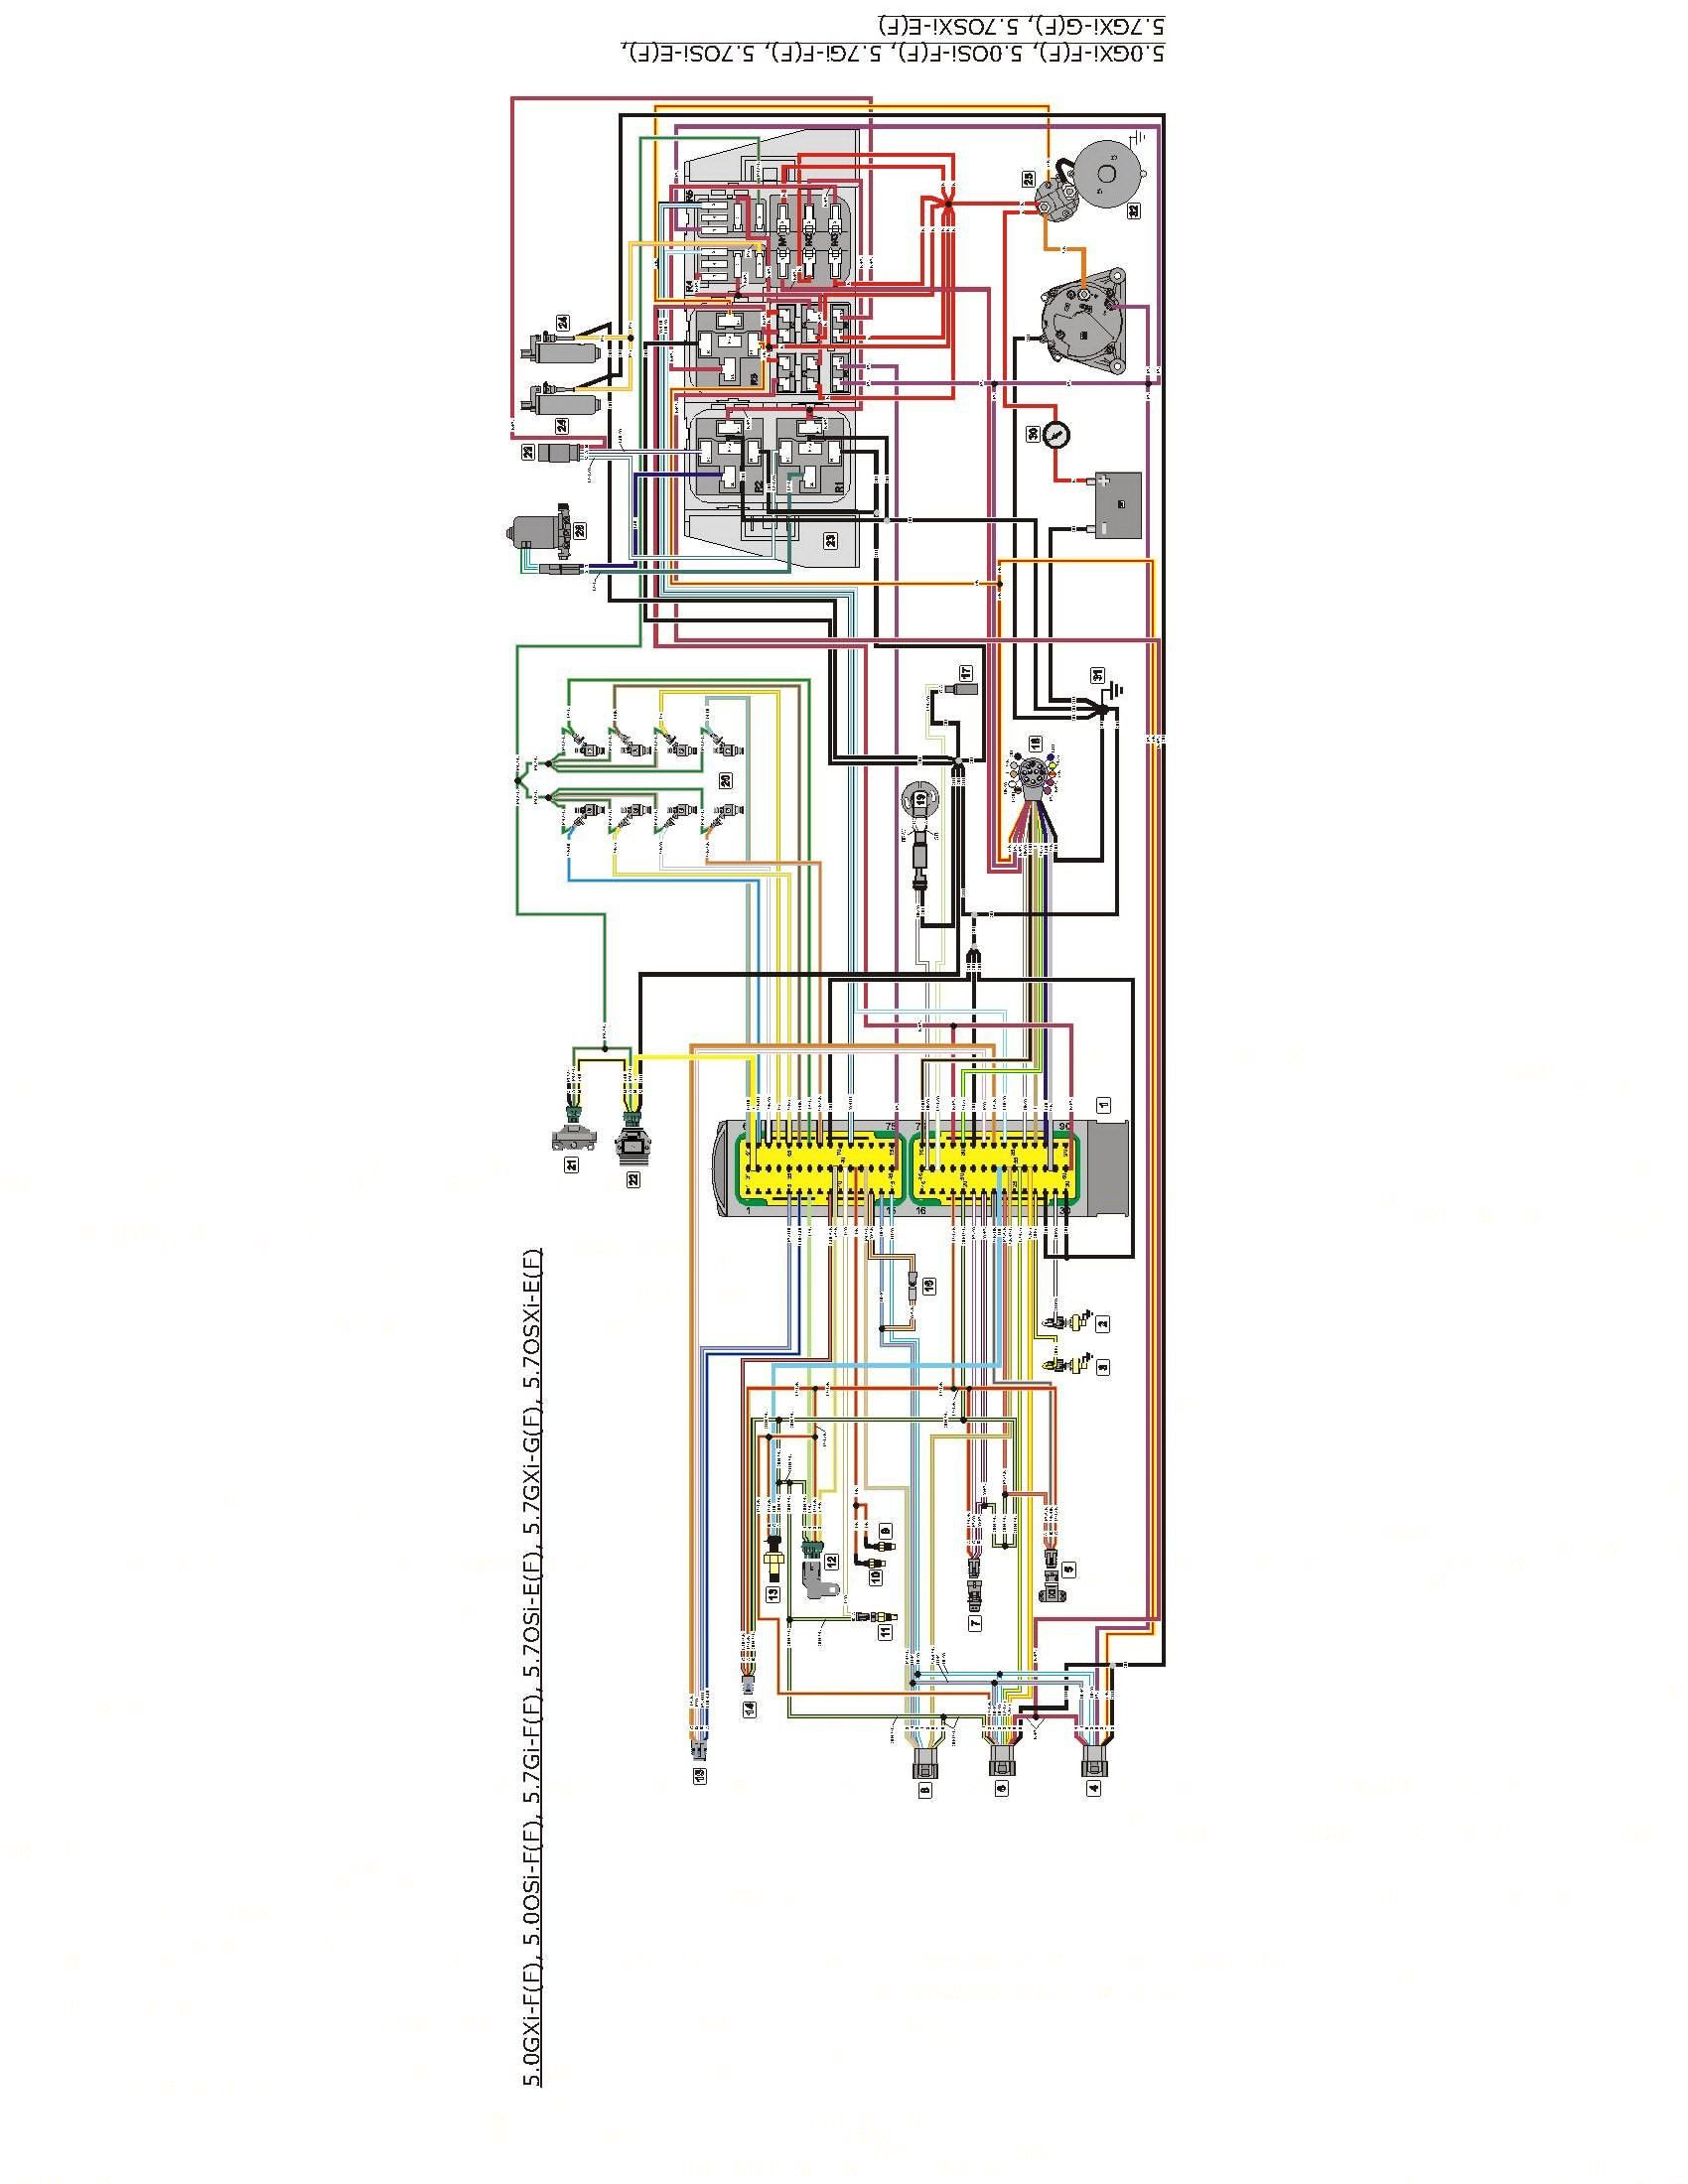 Mercury Outboard Power Trim Wiring Diagram : mercury, outboard, power, wiring, diagram, Mercury, Outboard, Power, Wiring, Diagram, Lovely, Volvo, Penta, Motor